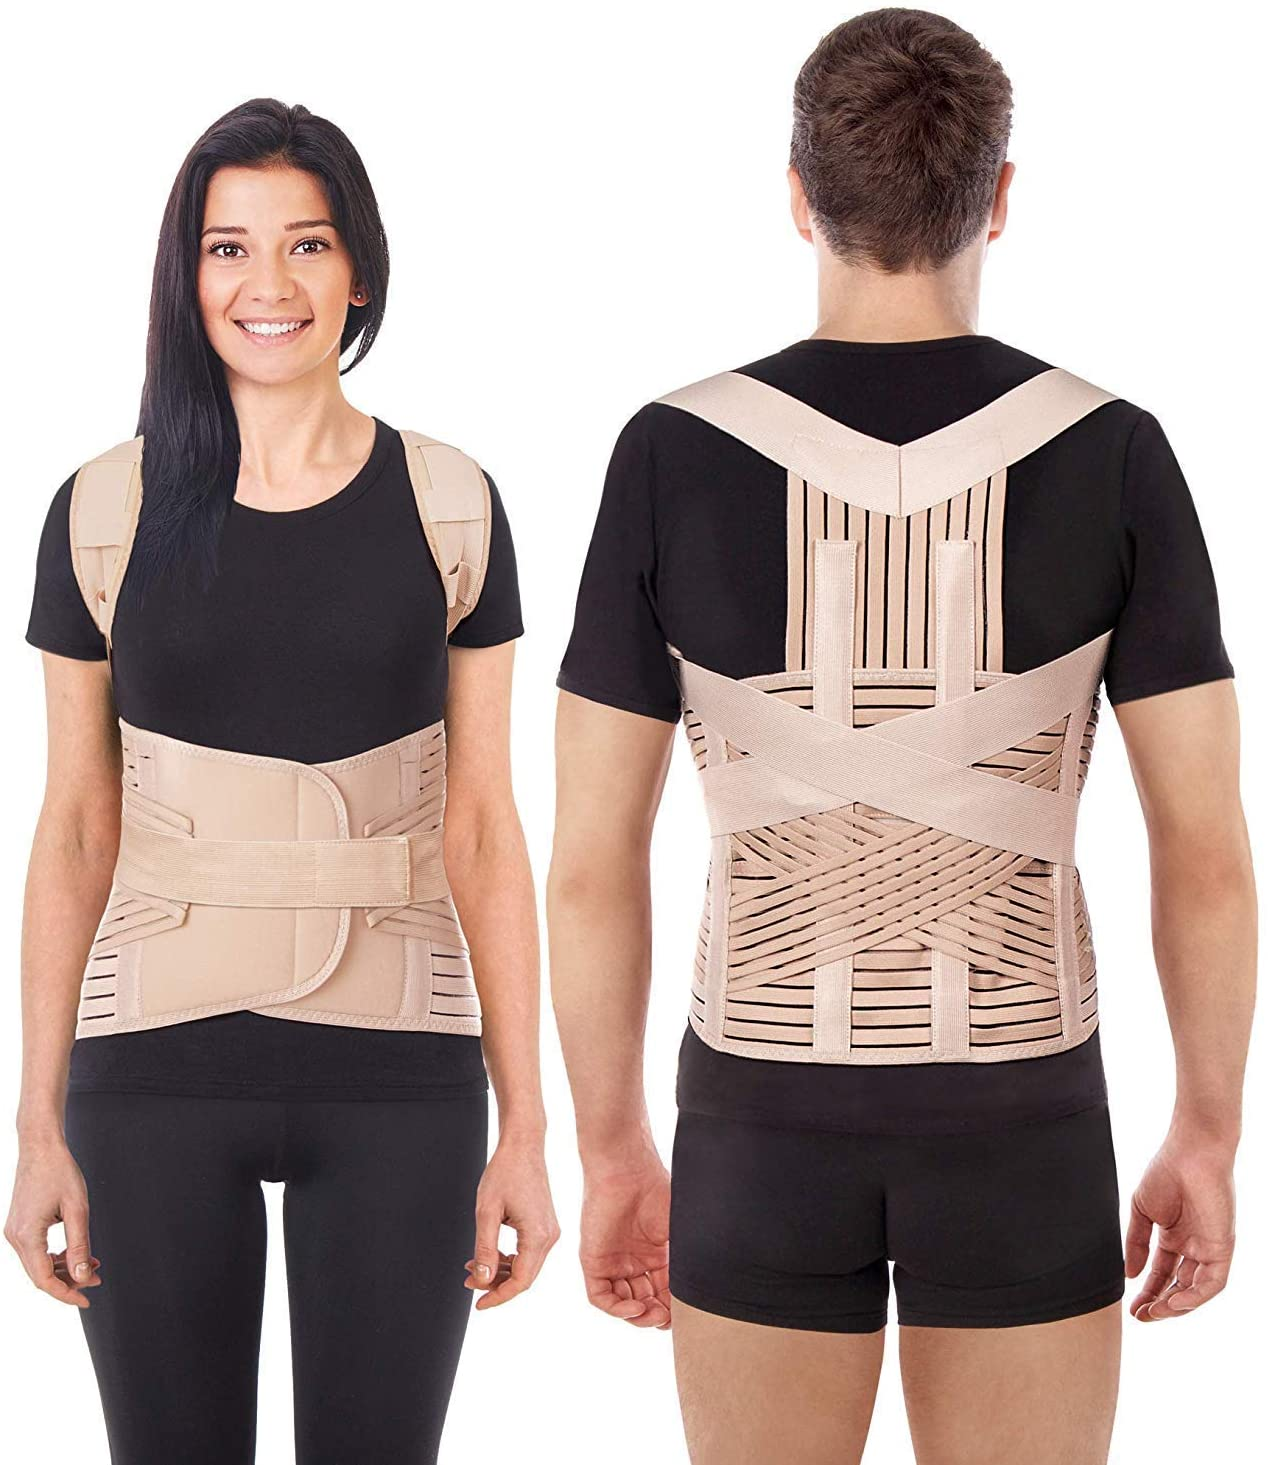 Breathable Posture Corrector Brace Lux Adjustable Lumbar Dorsal Shoulders Support Clavicle Postural Orthopedic Upper and Lower Back Pain Relief Beige Large